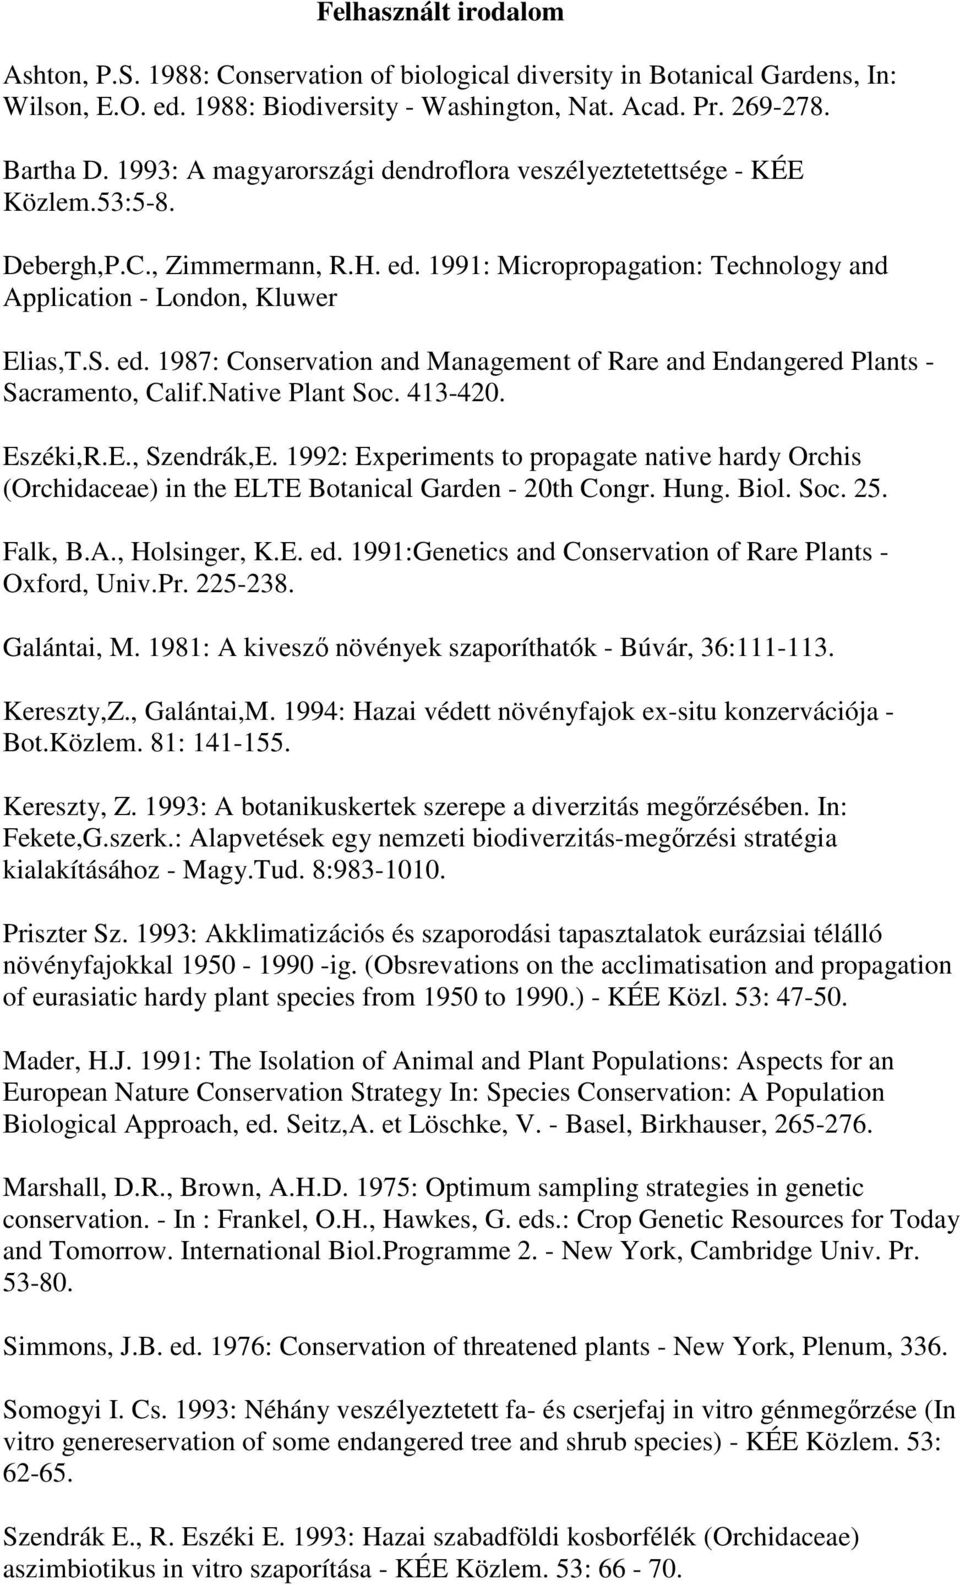 Native Plant Soc. 413-420. Eszéki,R.E., Szendrák,E. 1992: Experiments to propagate native hardy Orchis (Orchidaceae) in the ELTE Botanical Garden - 20th Congr. Hung. Biol. Soc. 25. Falk, B.A.